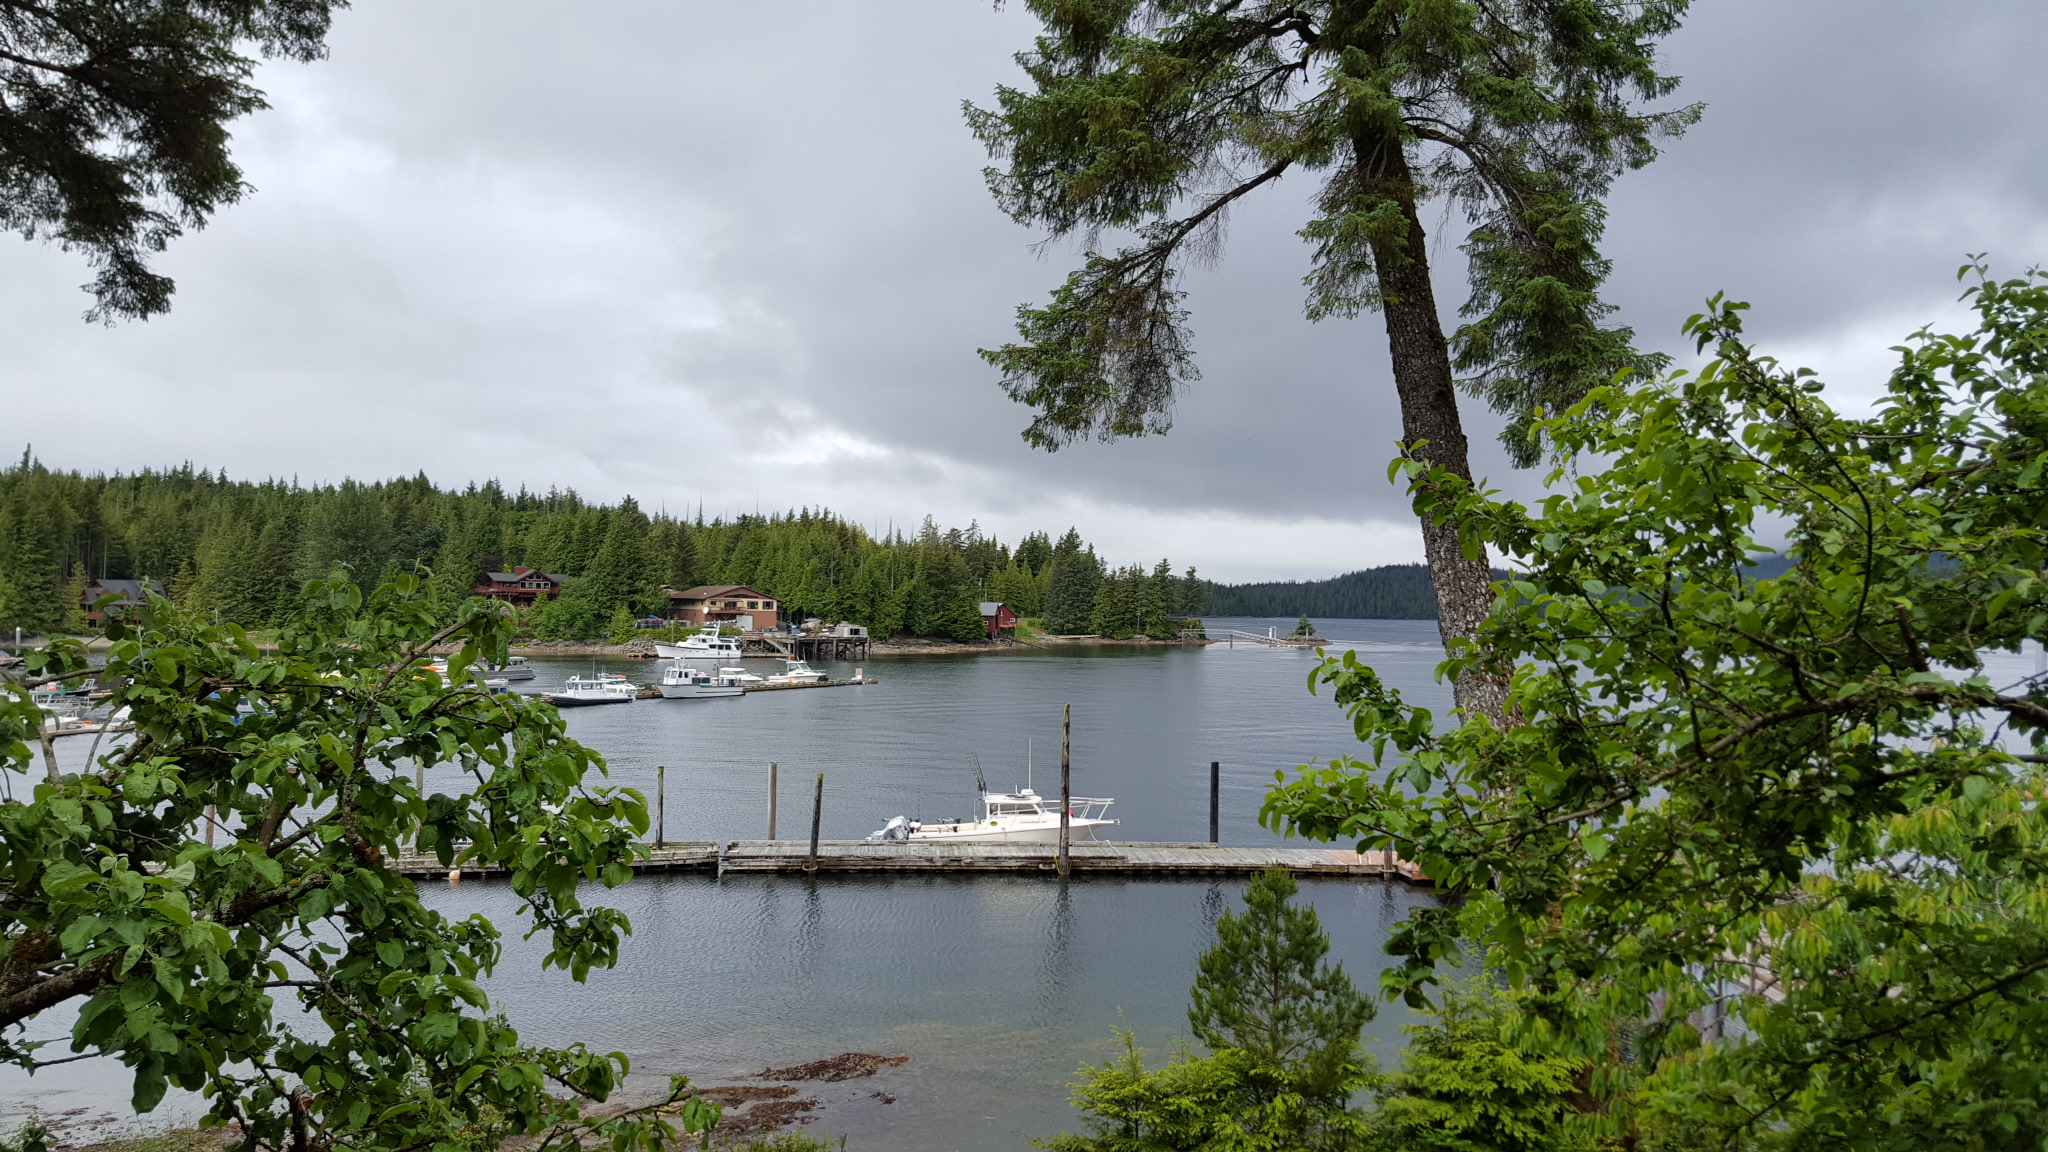 Waterfront View of Knudson Cove Marina